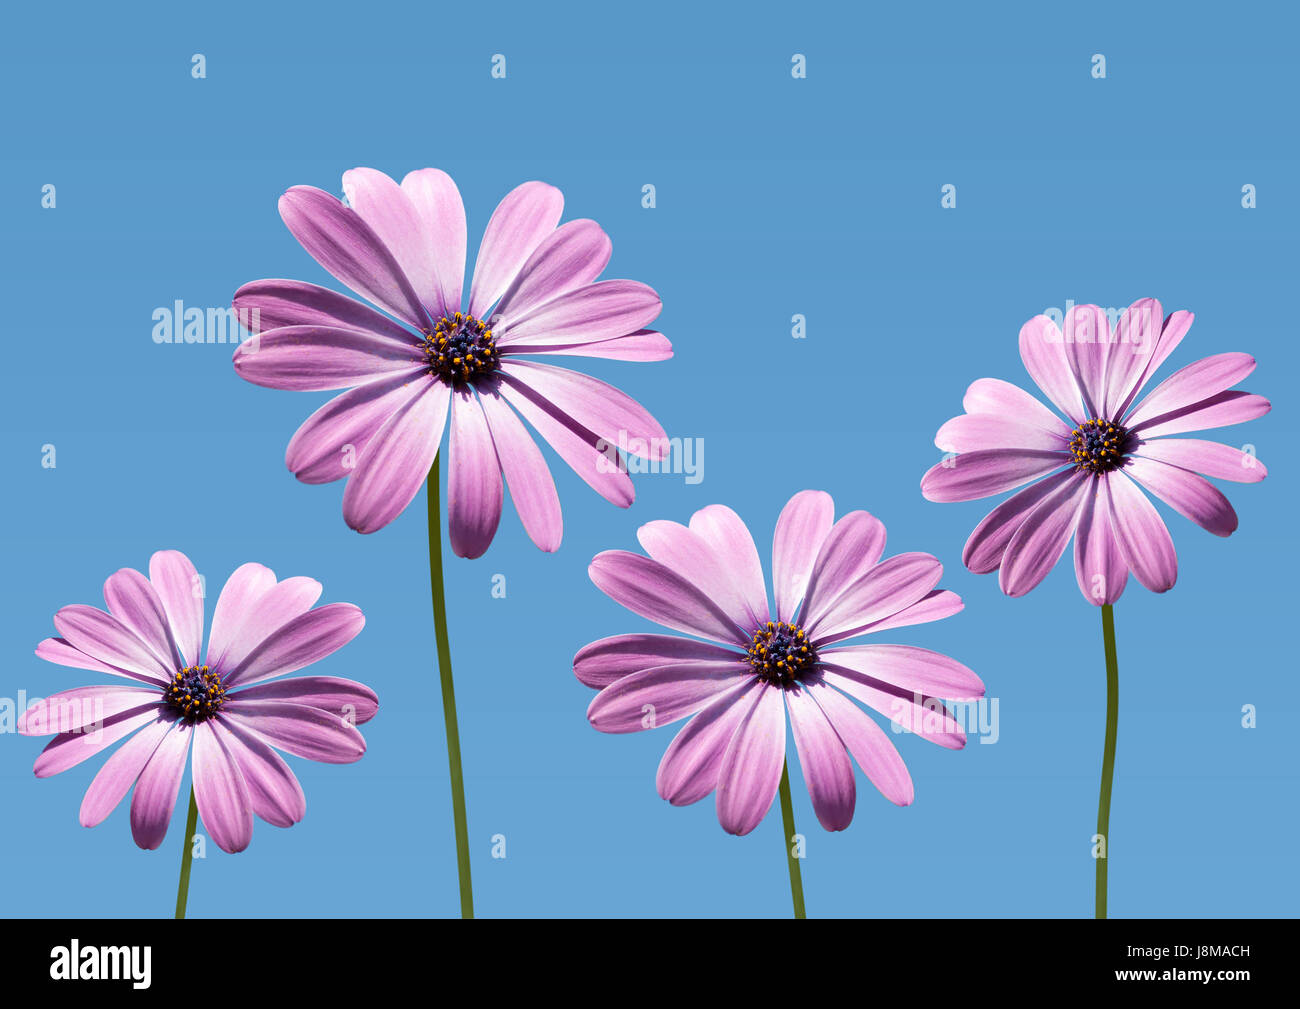 closeup of pink daisybushes, Osteospermum, with blue sky background Stock Photo